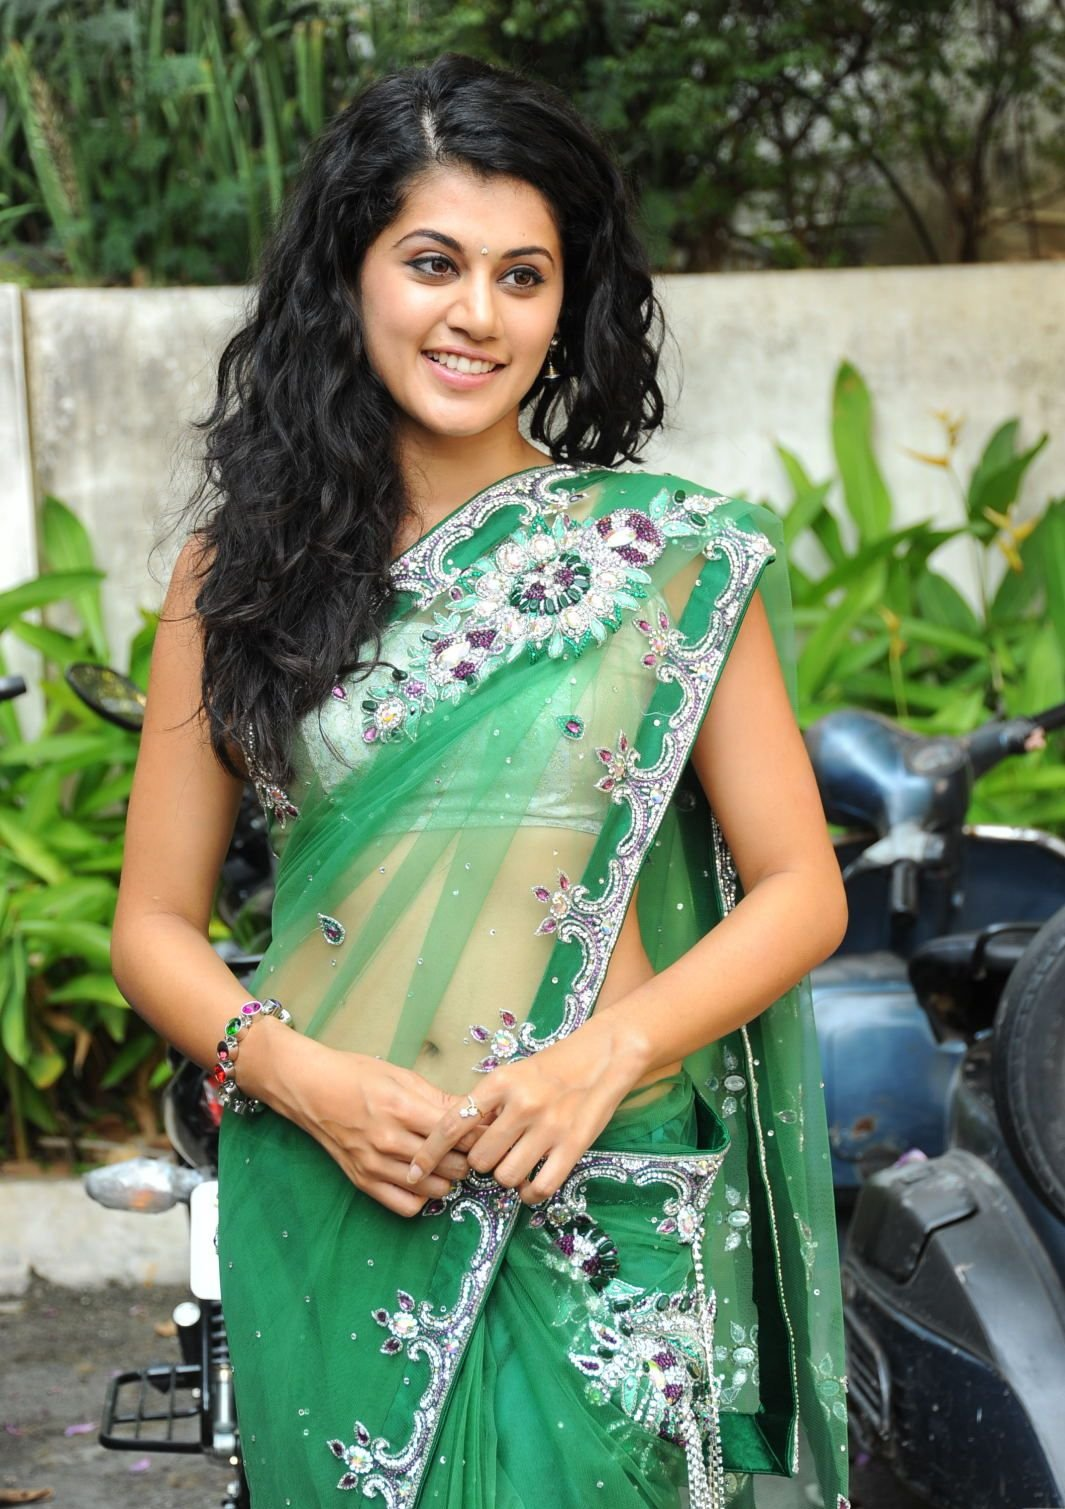 Tapsee Saree Hot Stills Navel Downloads Ajilbab Portal